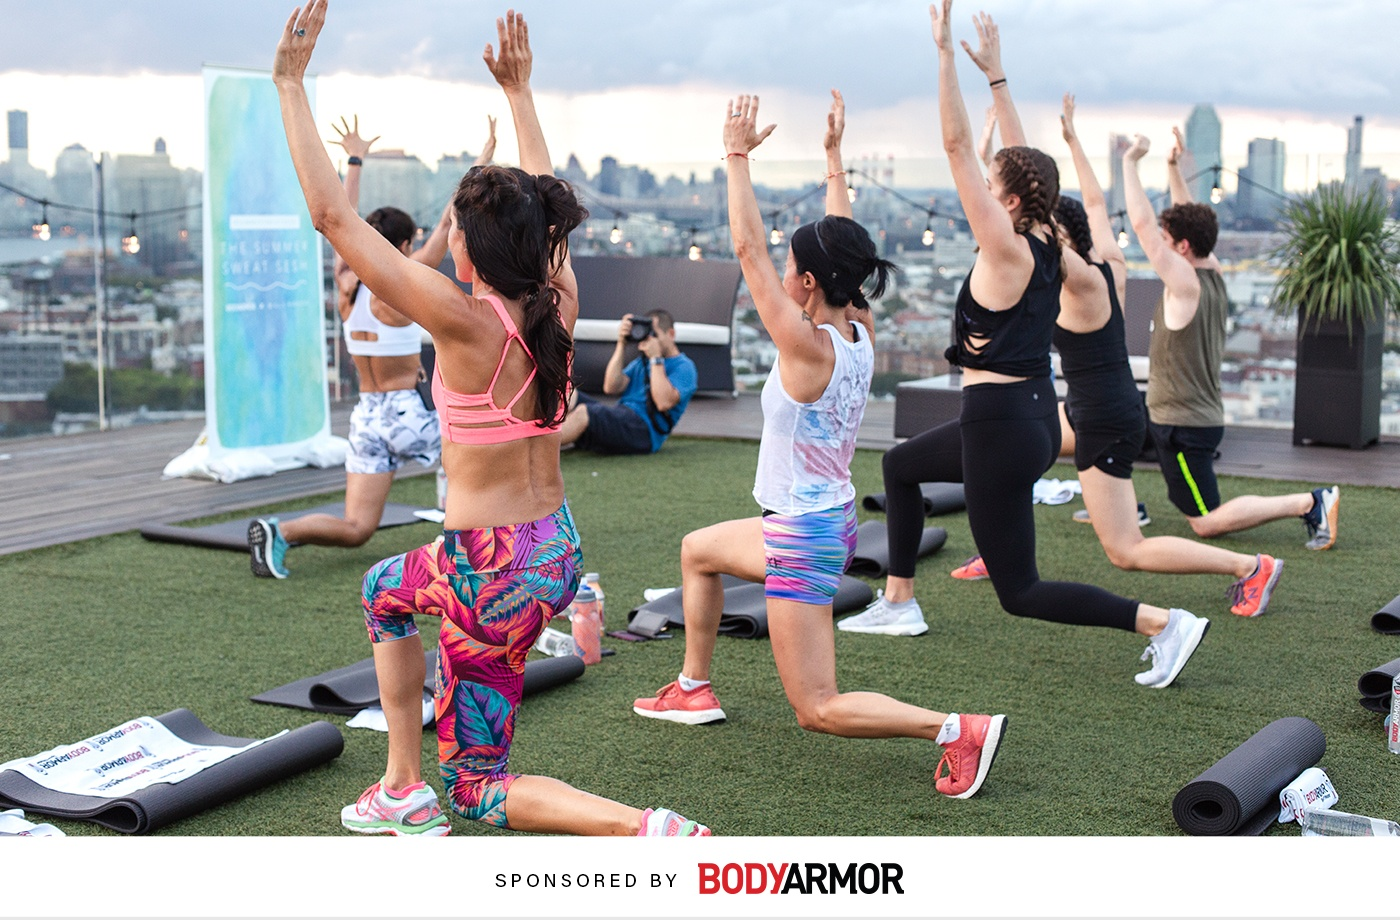 3 ways to instantly upgrade your outdoor workout